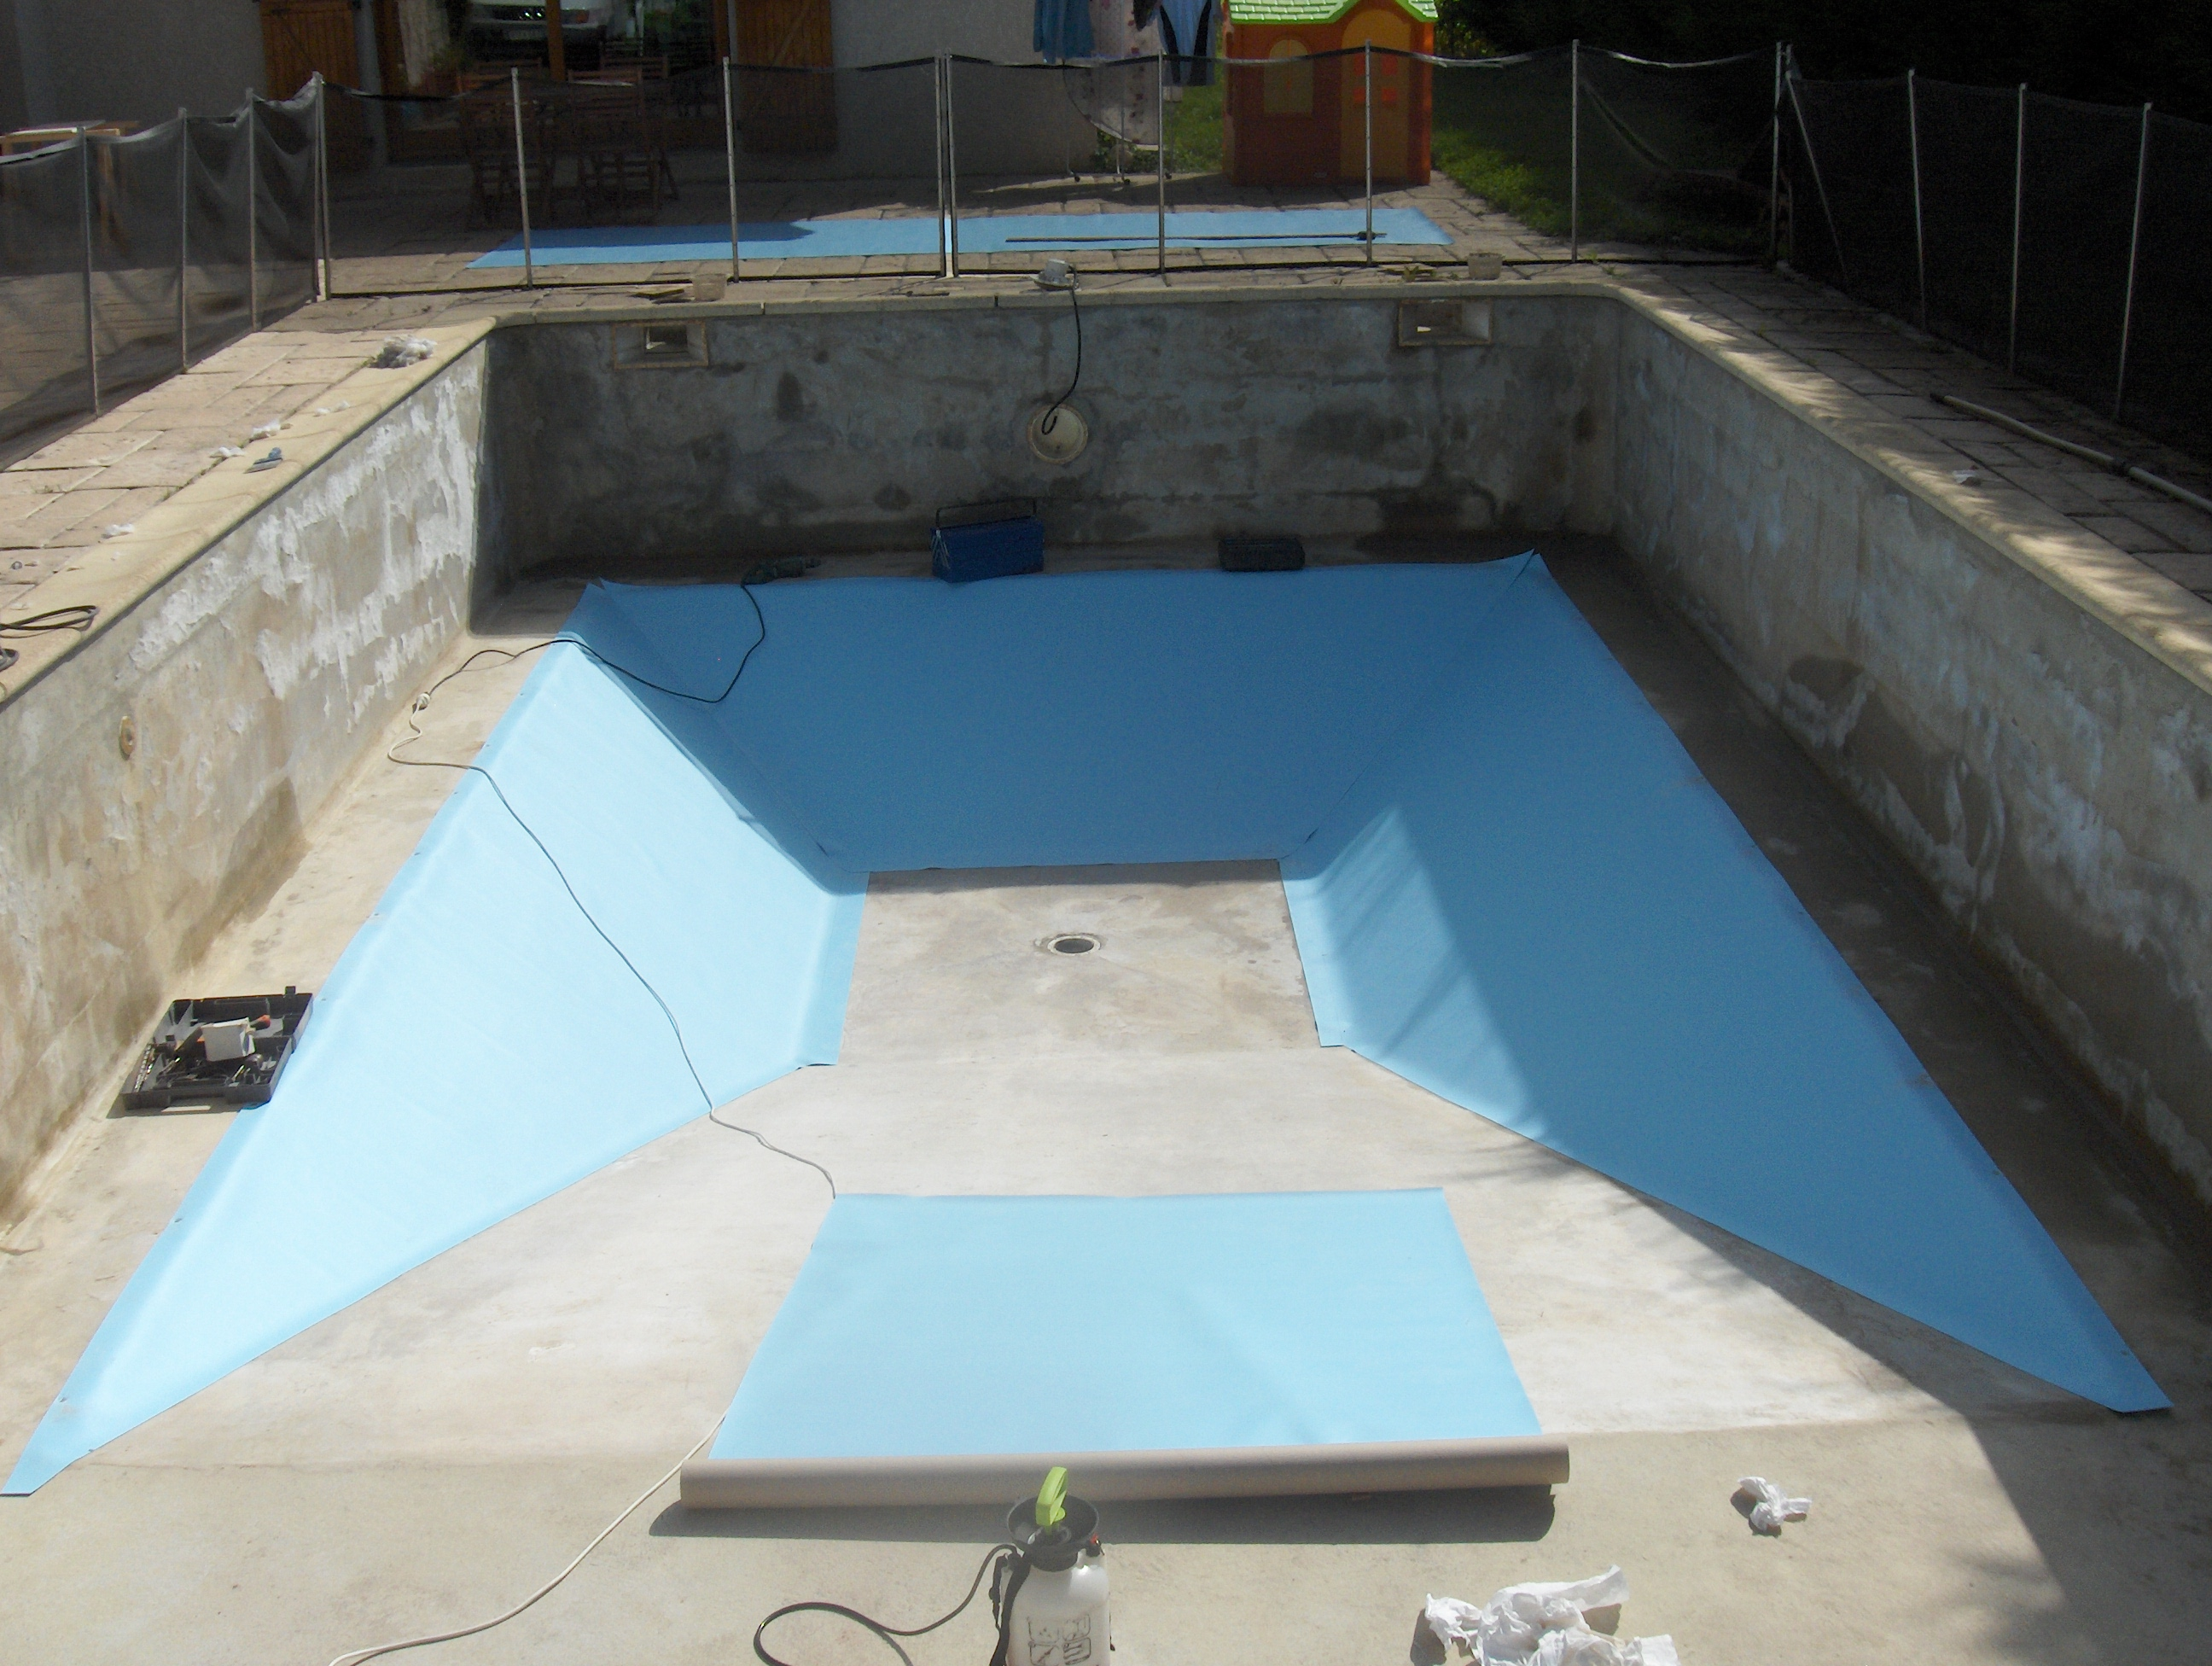 Prix pvc arme piscine photos de conception de maison for Prix pose pvc arme piscine